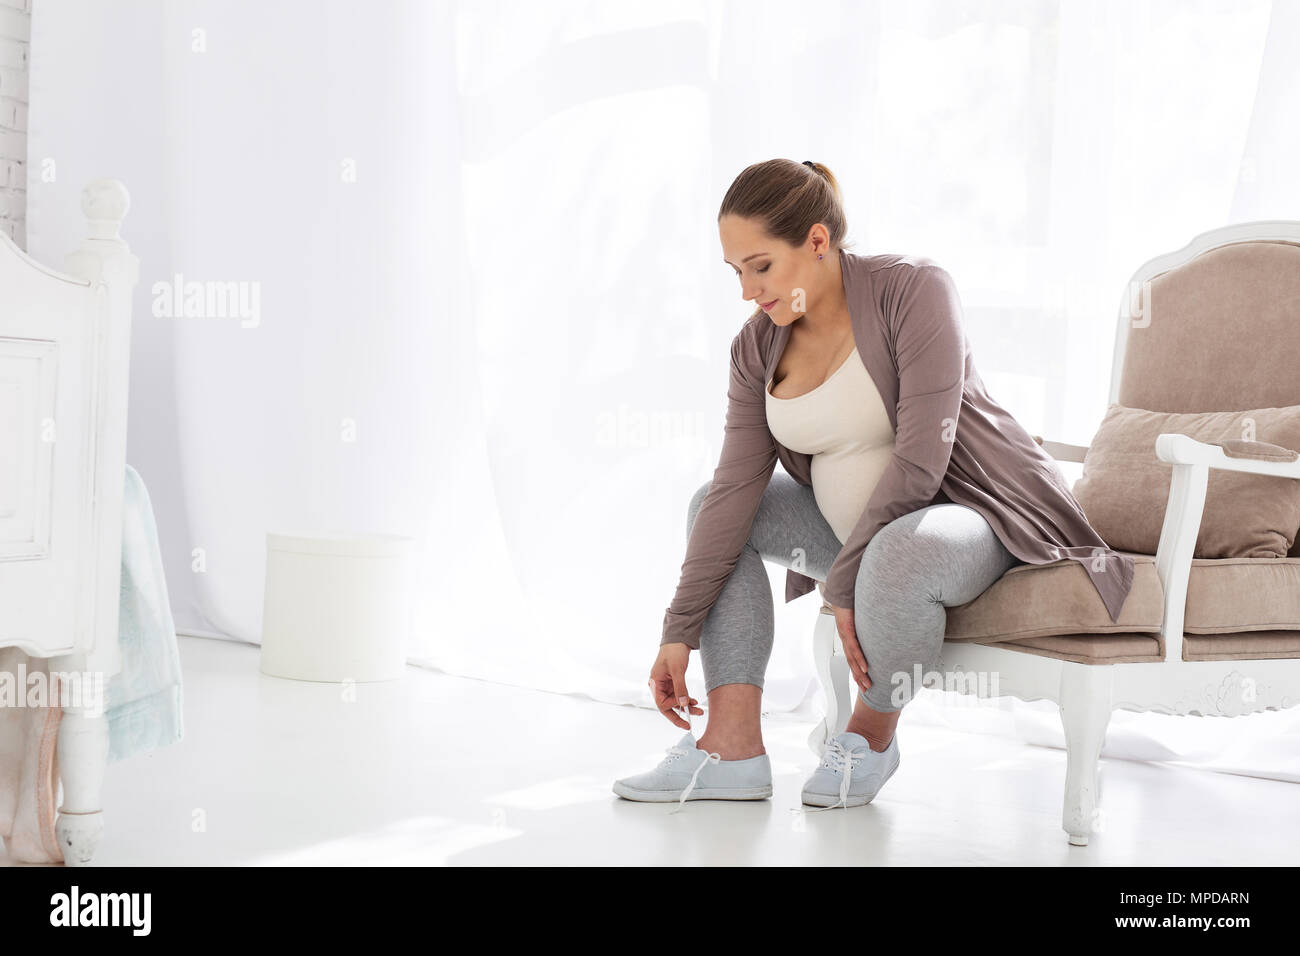 Focused pregnant woman putting on shoes - Stock Image